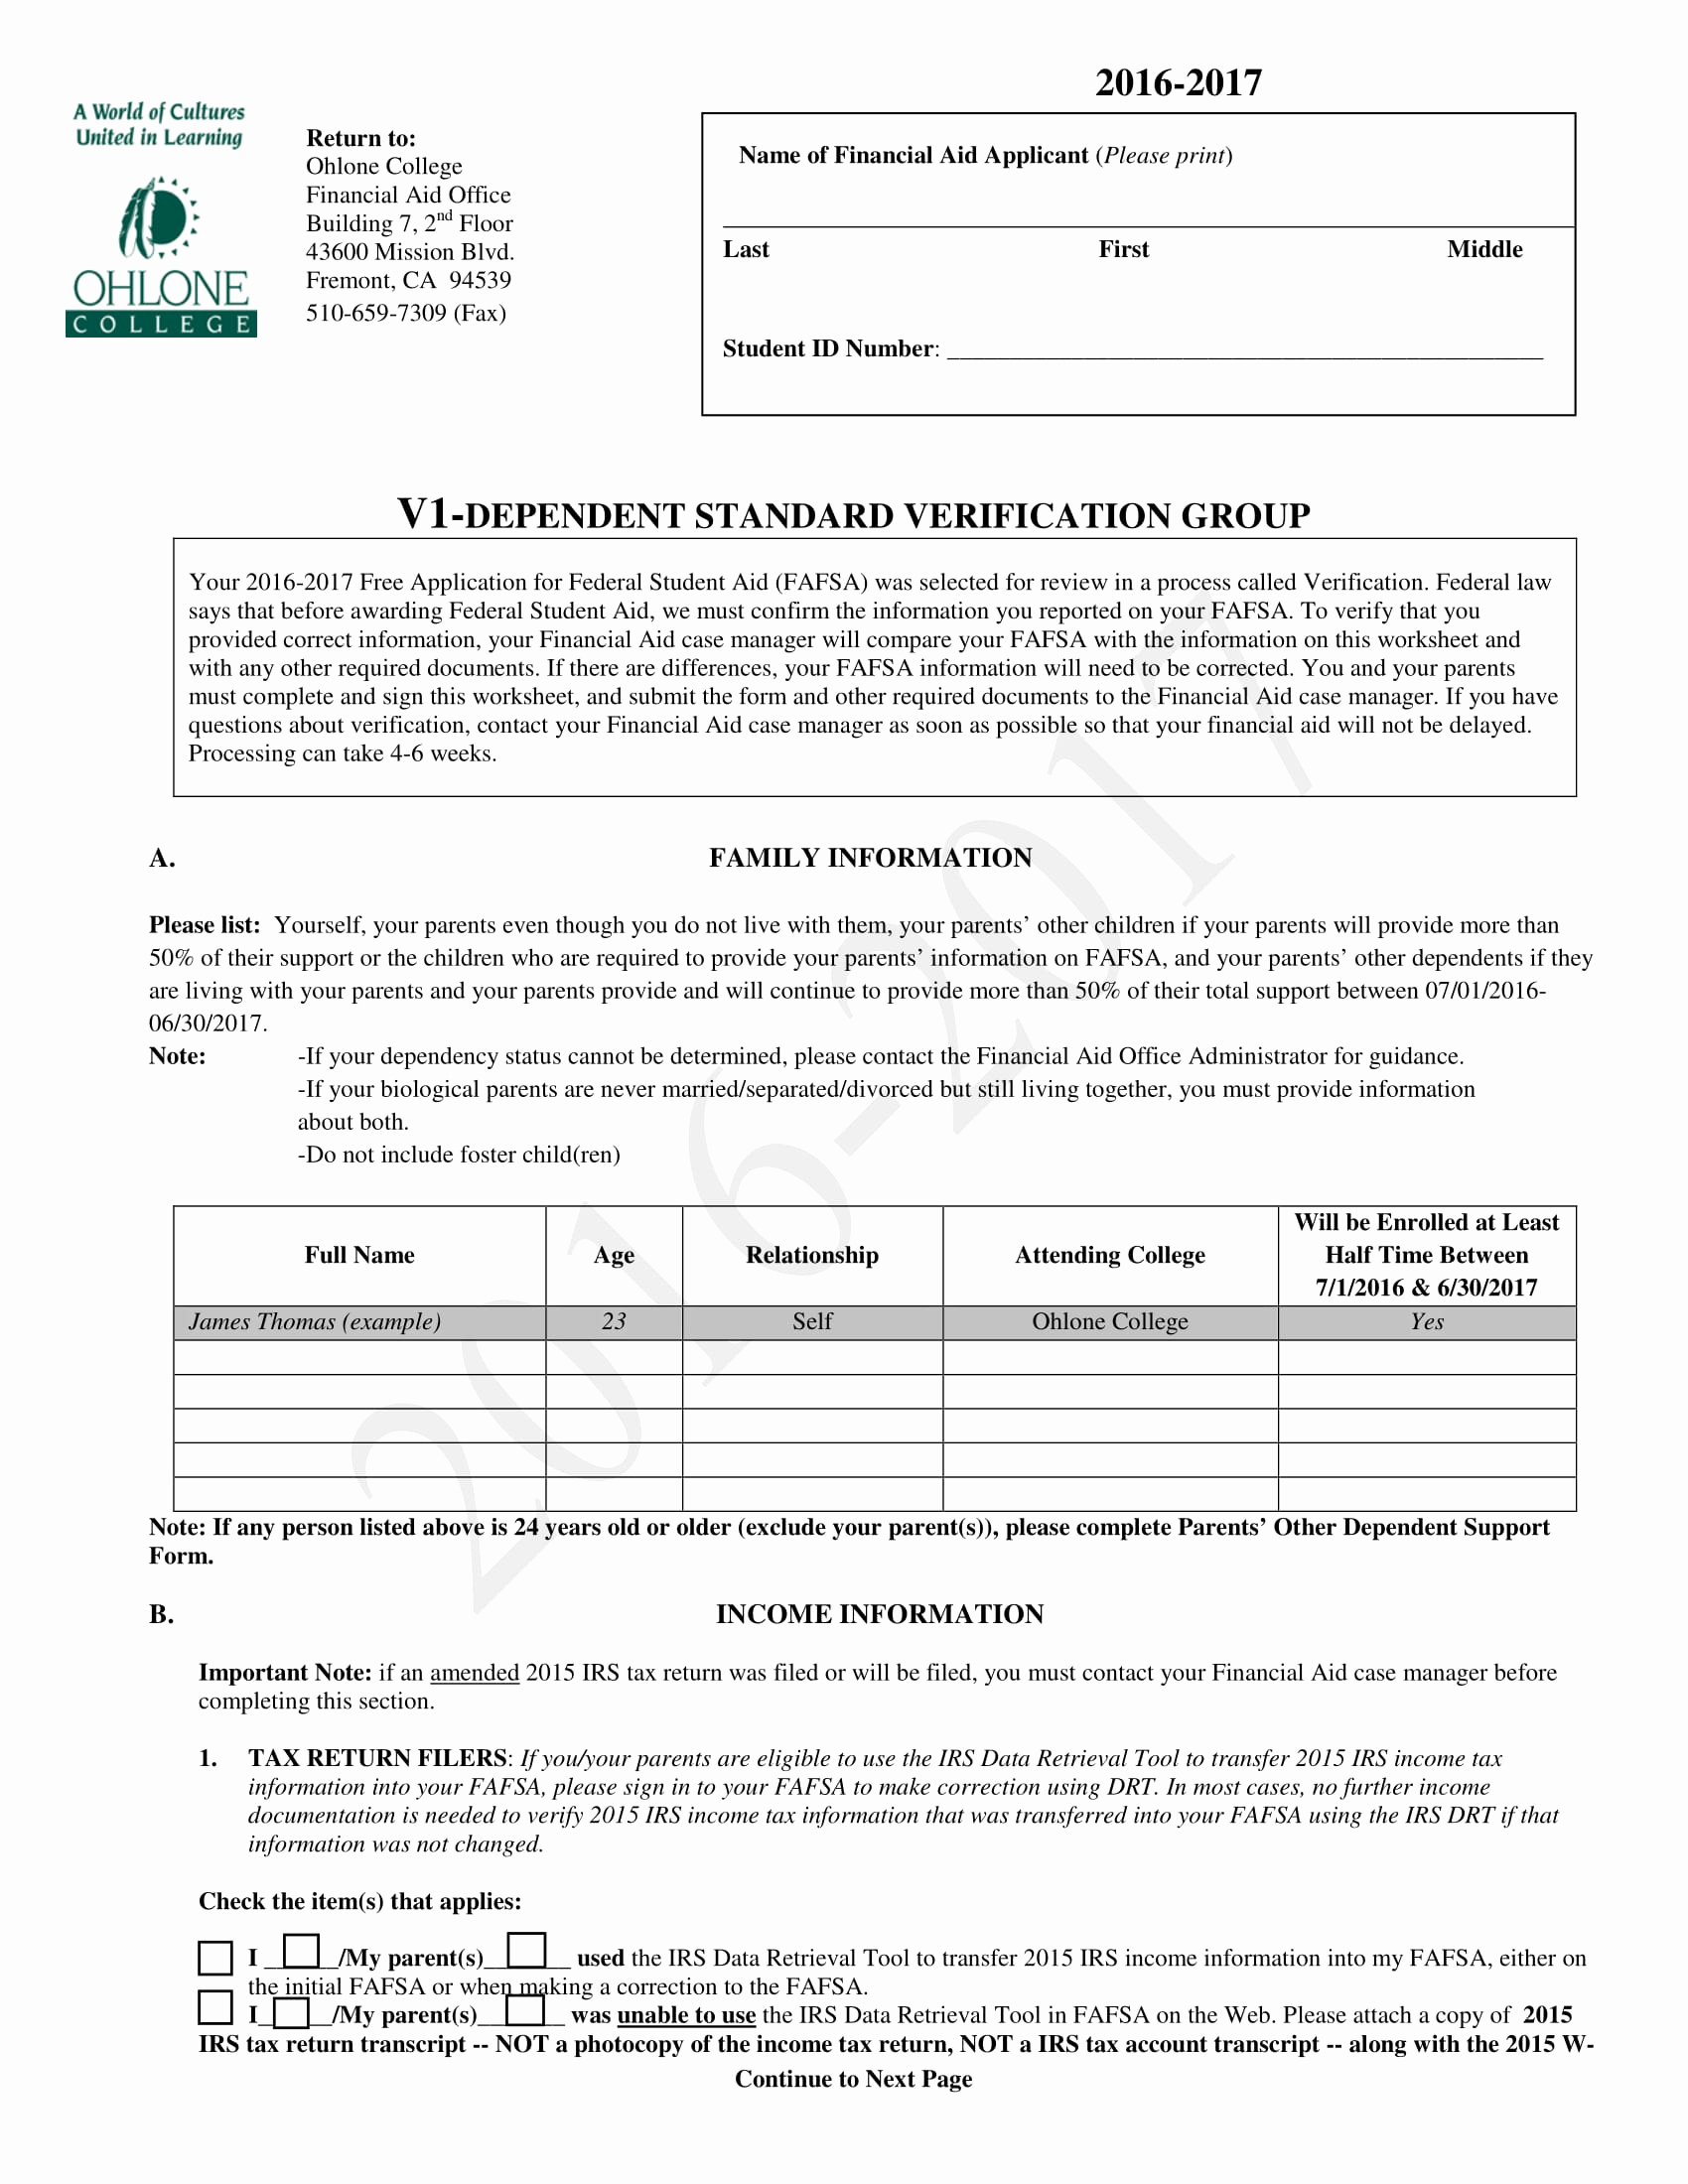 Standard Verification Of Employment form Awesome 7 Steps In Filling Out A Dependent Verification form